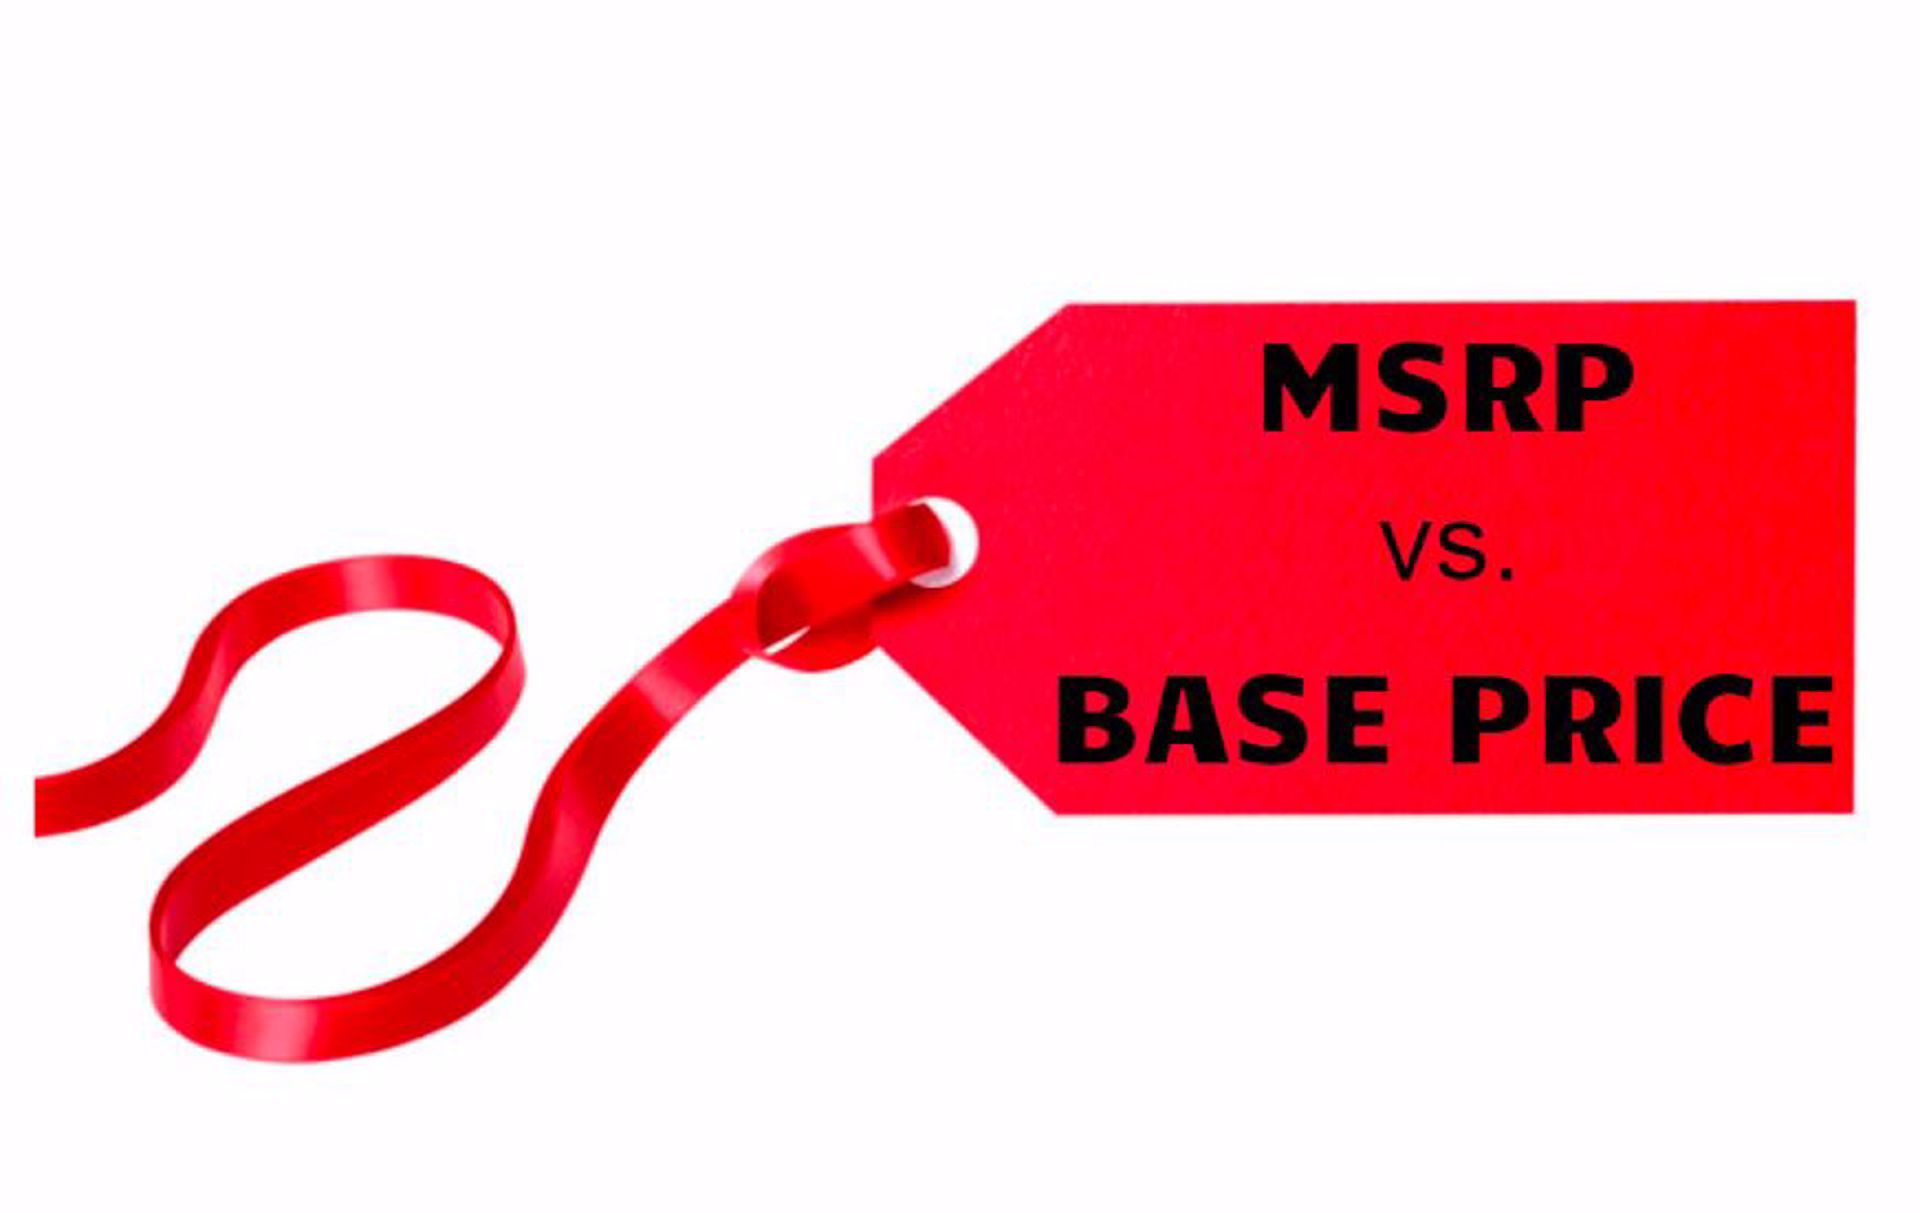 MSRP vs. Base Price - What is the Difference?